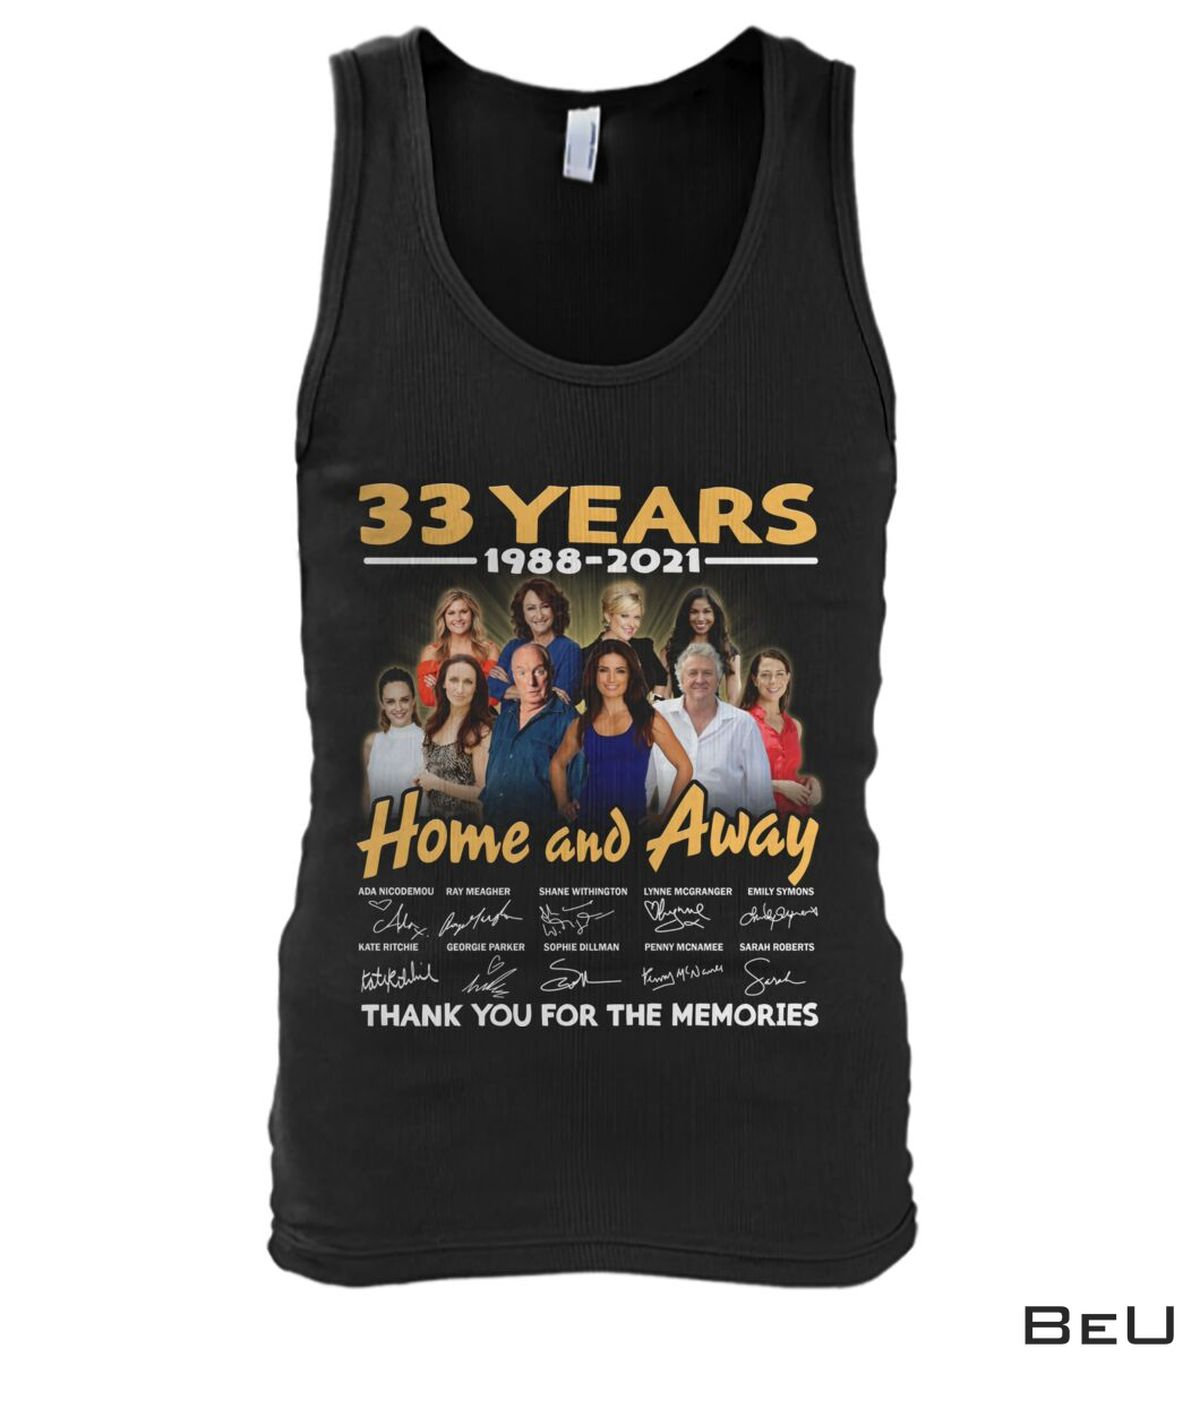 Top 33 Years Home And Away Thank You For The Memories Shirt, hoodie, tank top